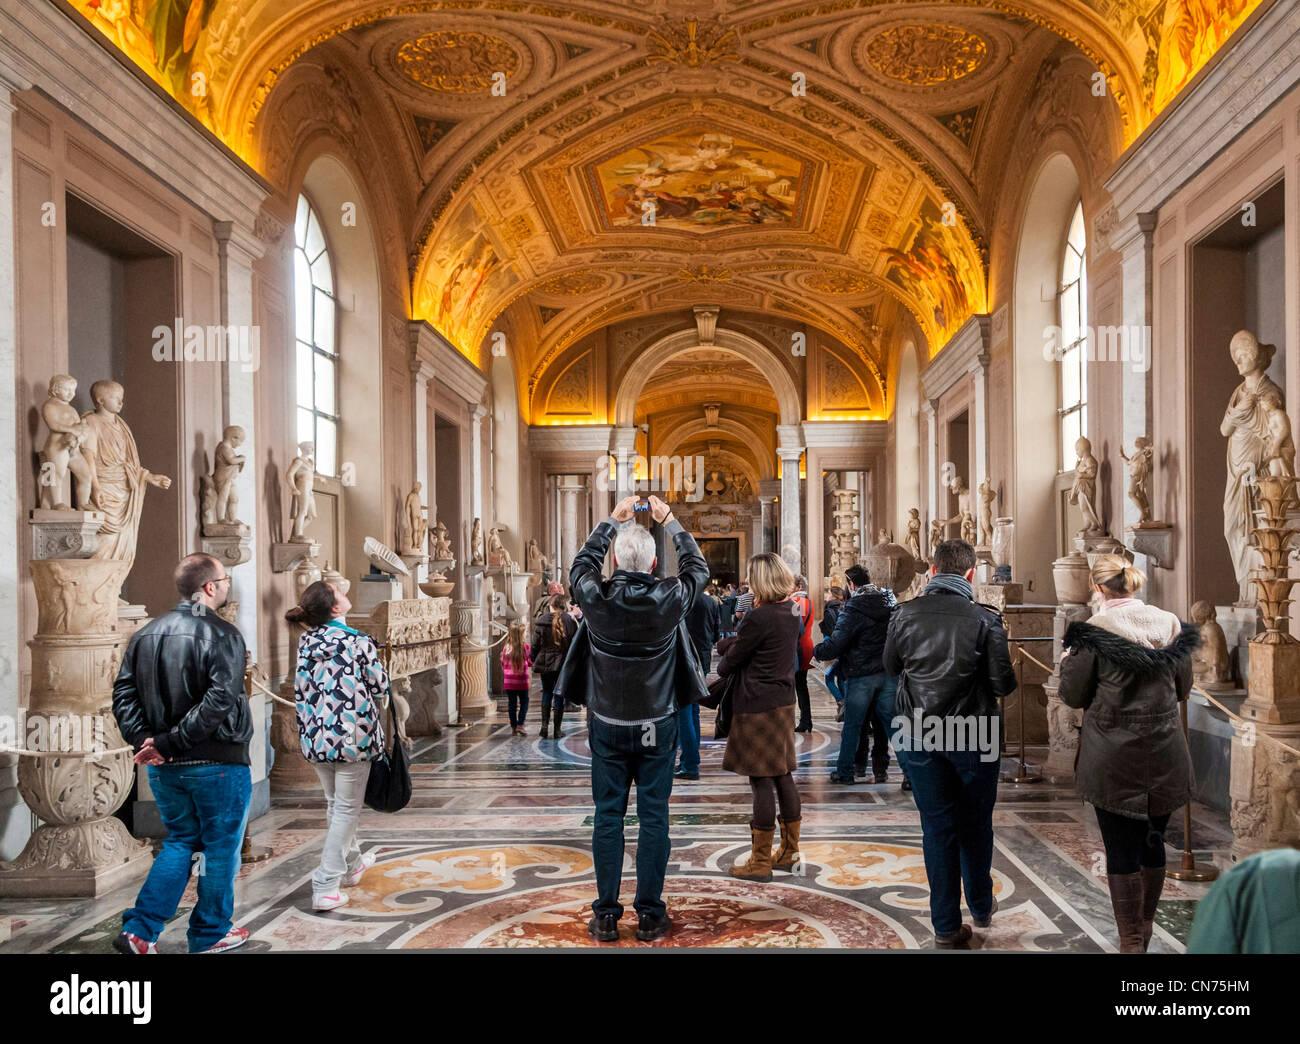 Tourists in the Vatican Museum, Rome, Italy - the Gallery of Statues in the Museo Pio-Clementino - Stock Image